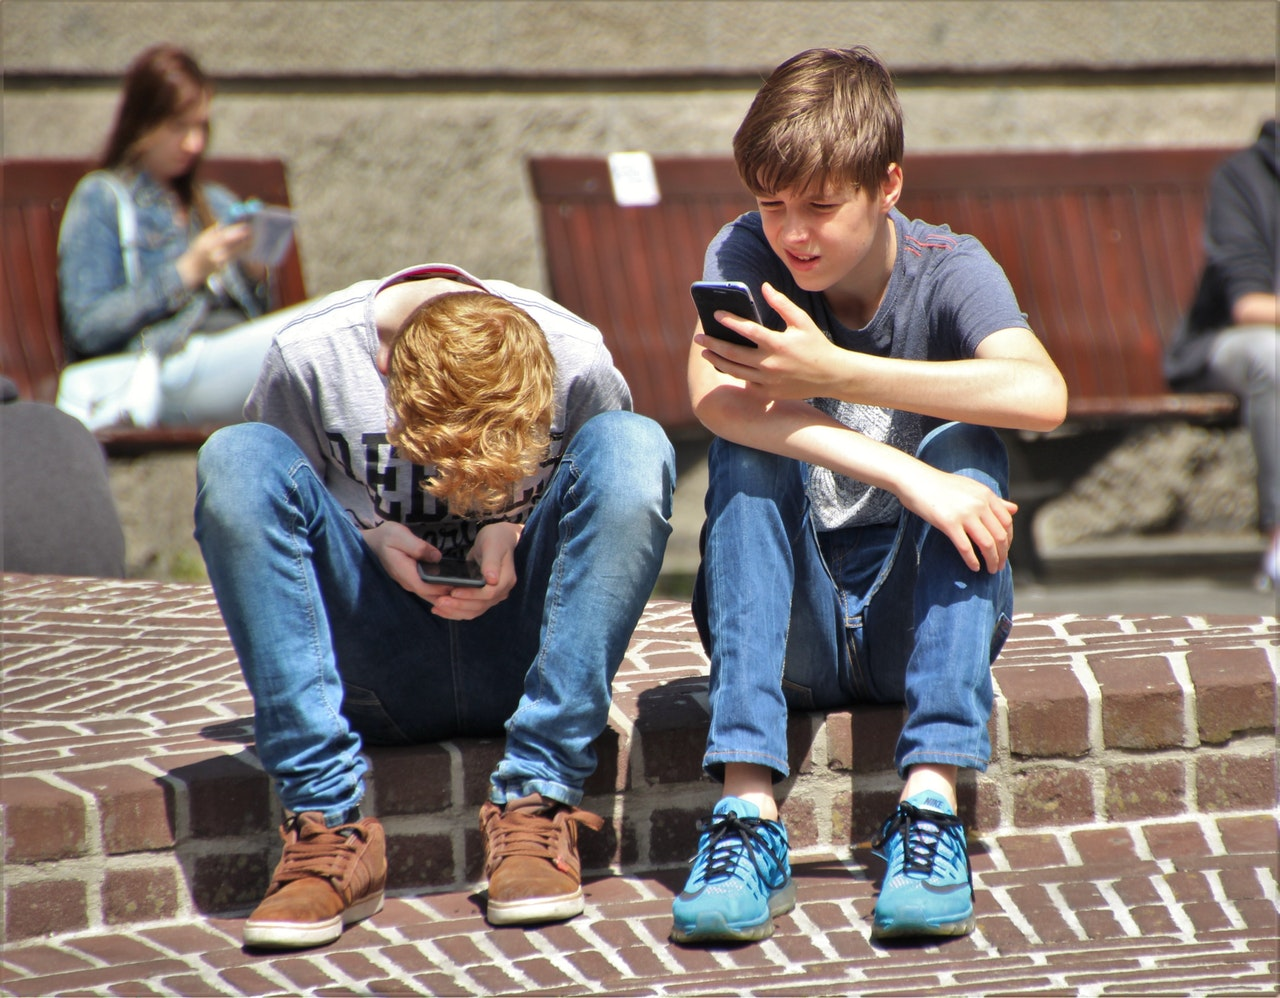 Smartphones and tablets are causing mental health problems in children